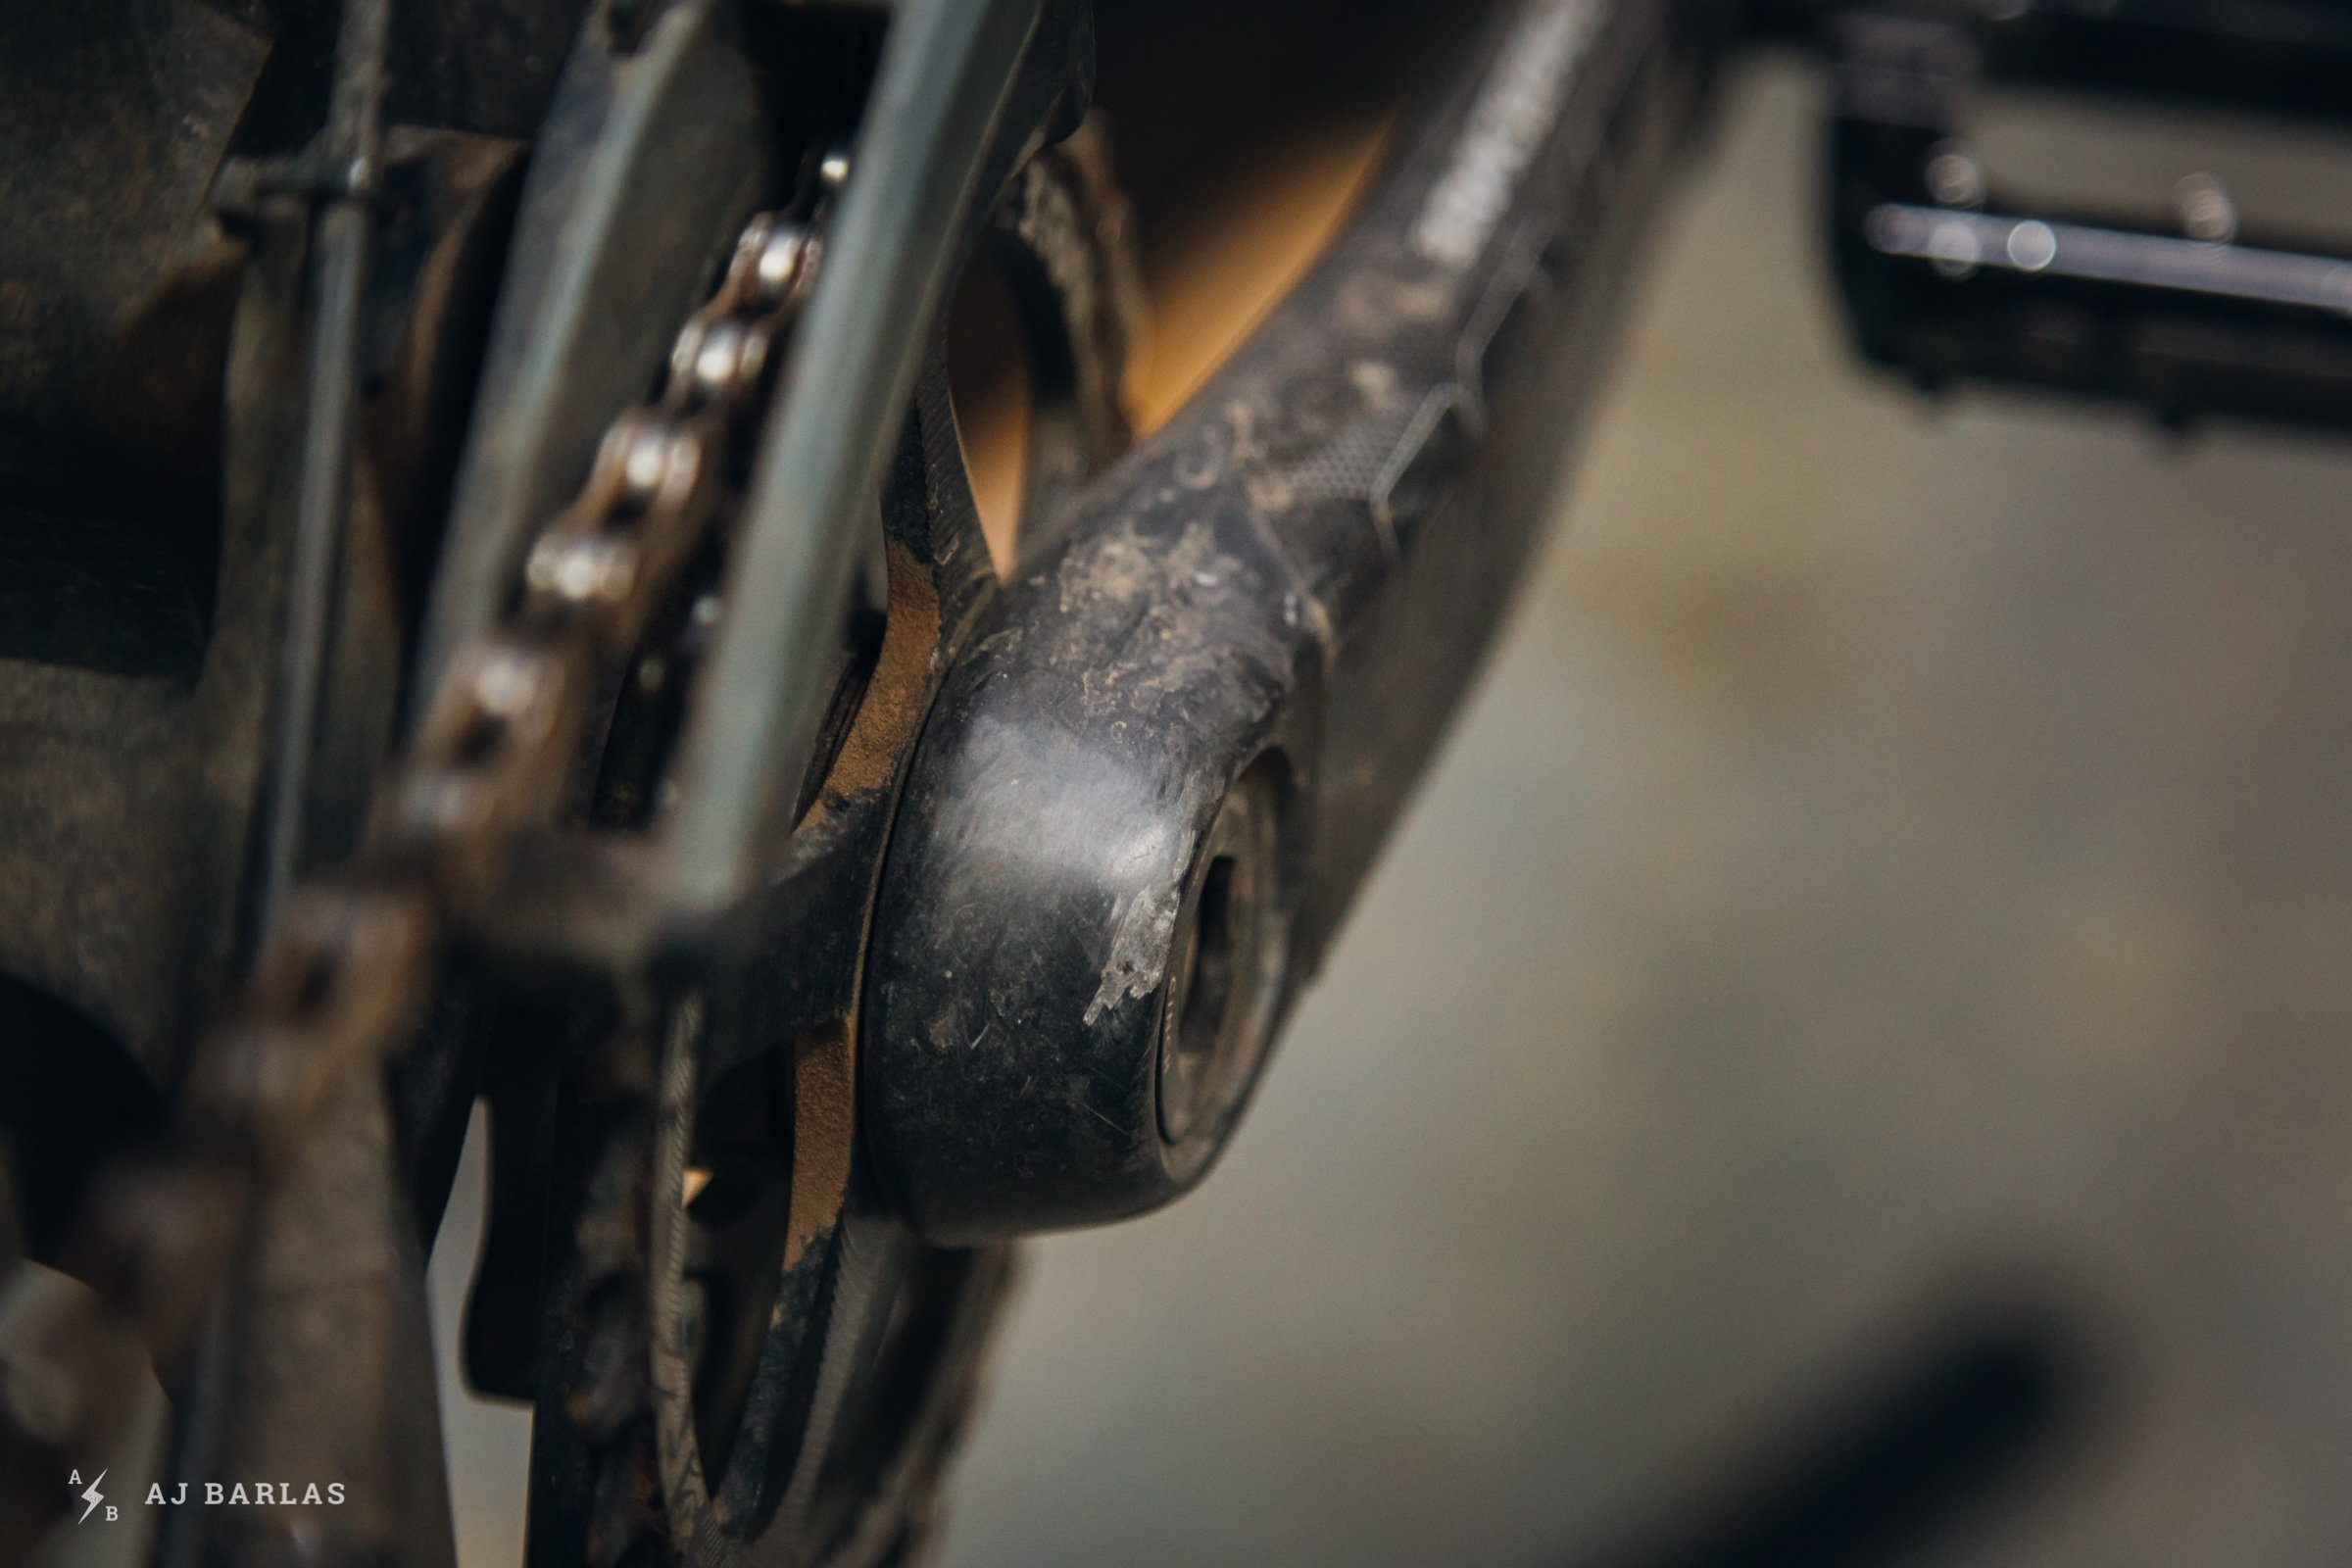 race-face-next-r-cranks-190718-ajbarlas-8265.jpg